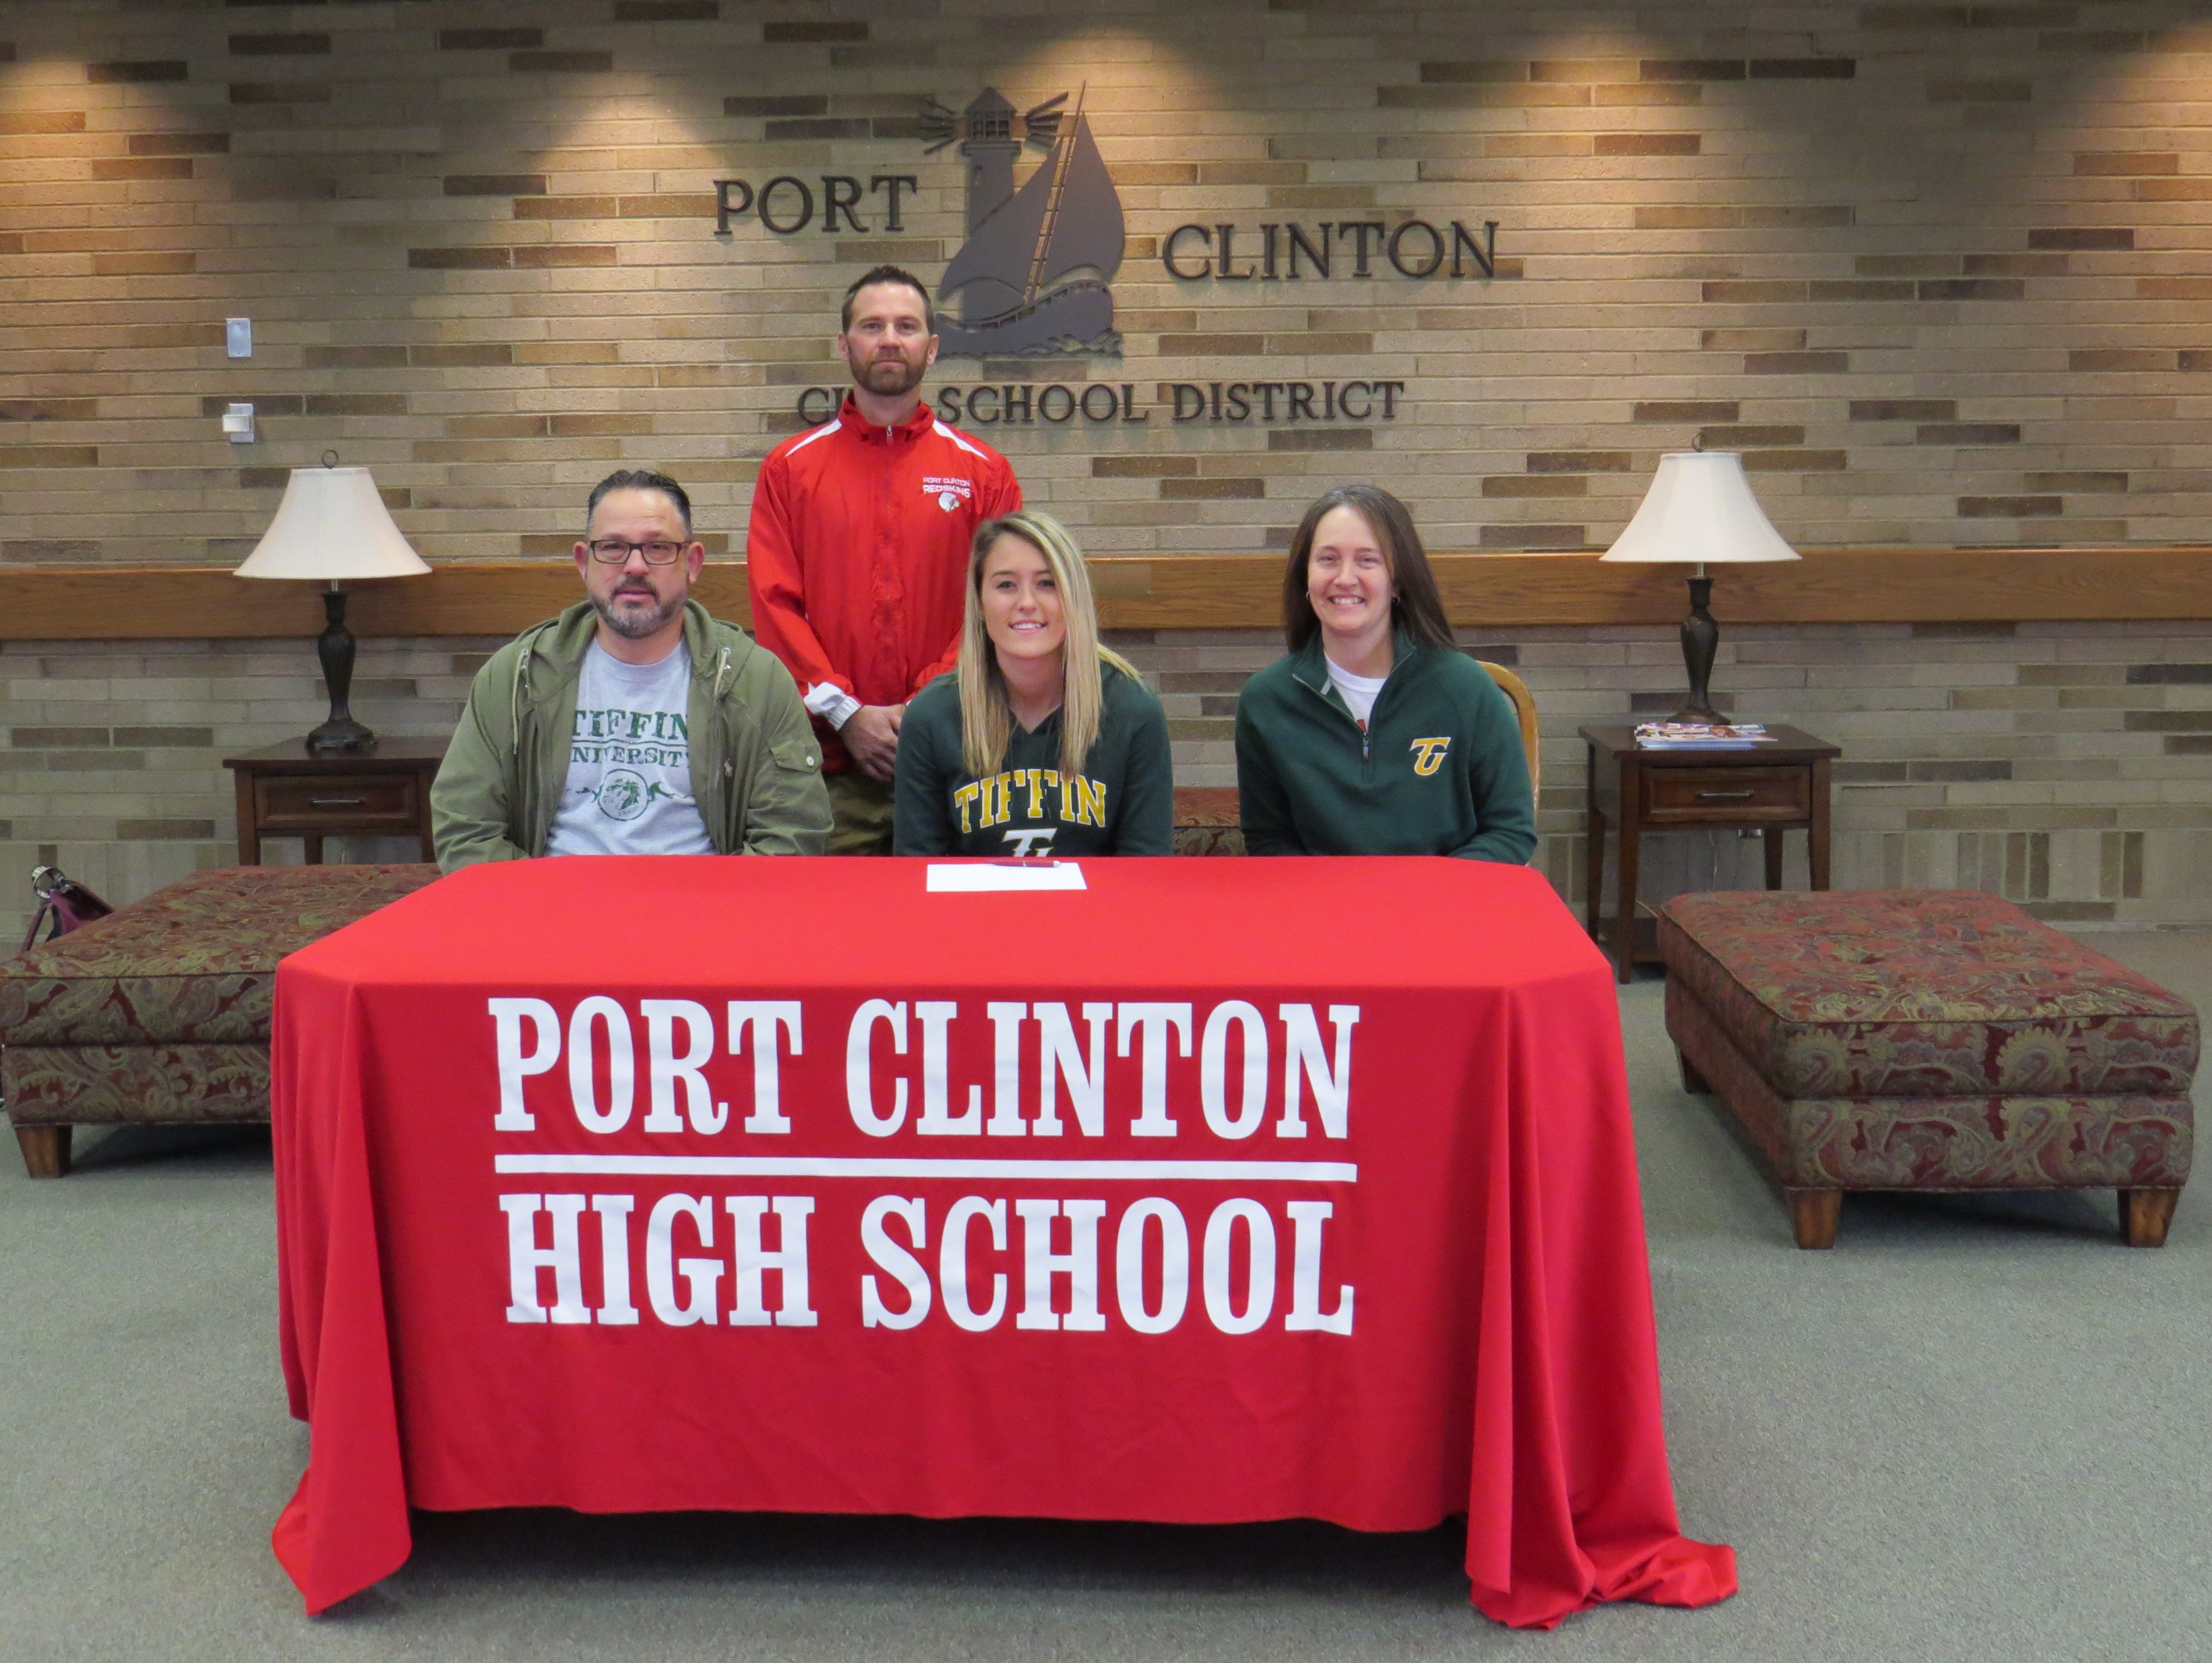 Port Clinton senior Ashtyn Baney, center, will continue her track career at Tiffin University. Baney is joined by her father, Jeff, and mother, Nikki. Redskins track coach Seth Benner is standing.